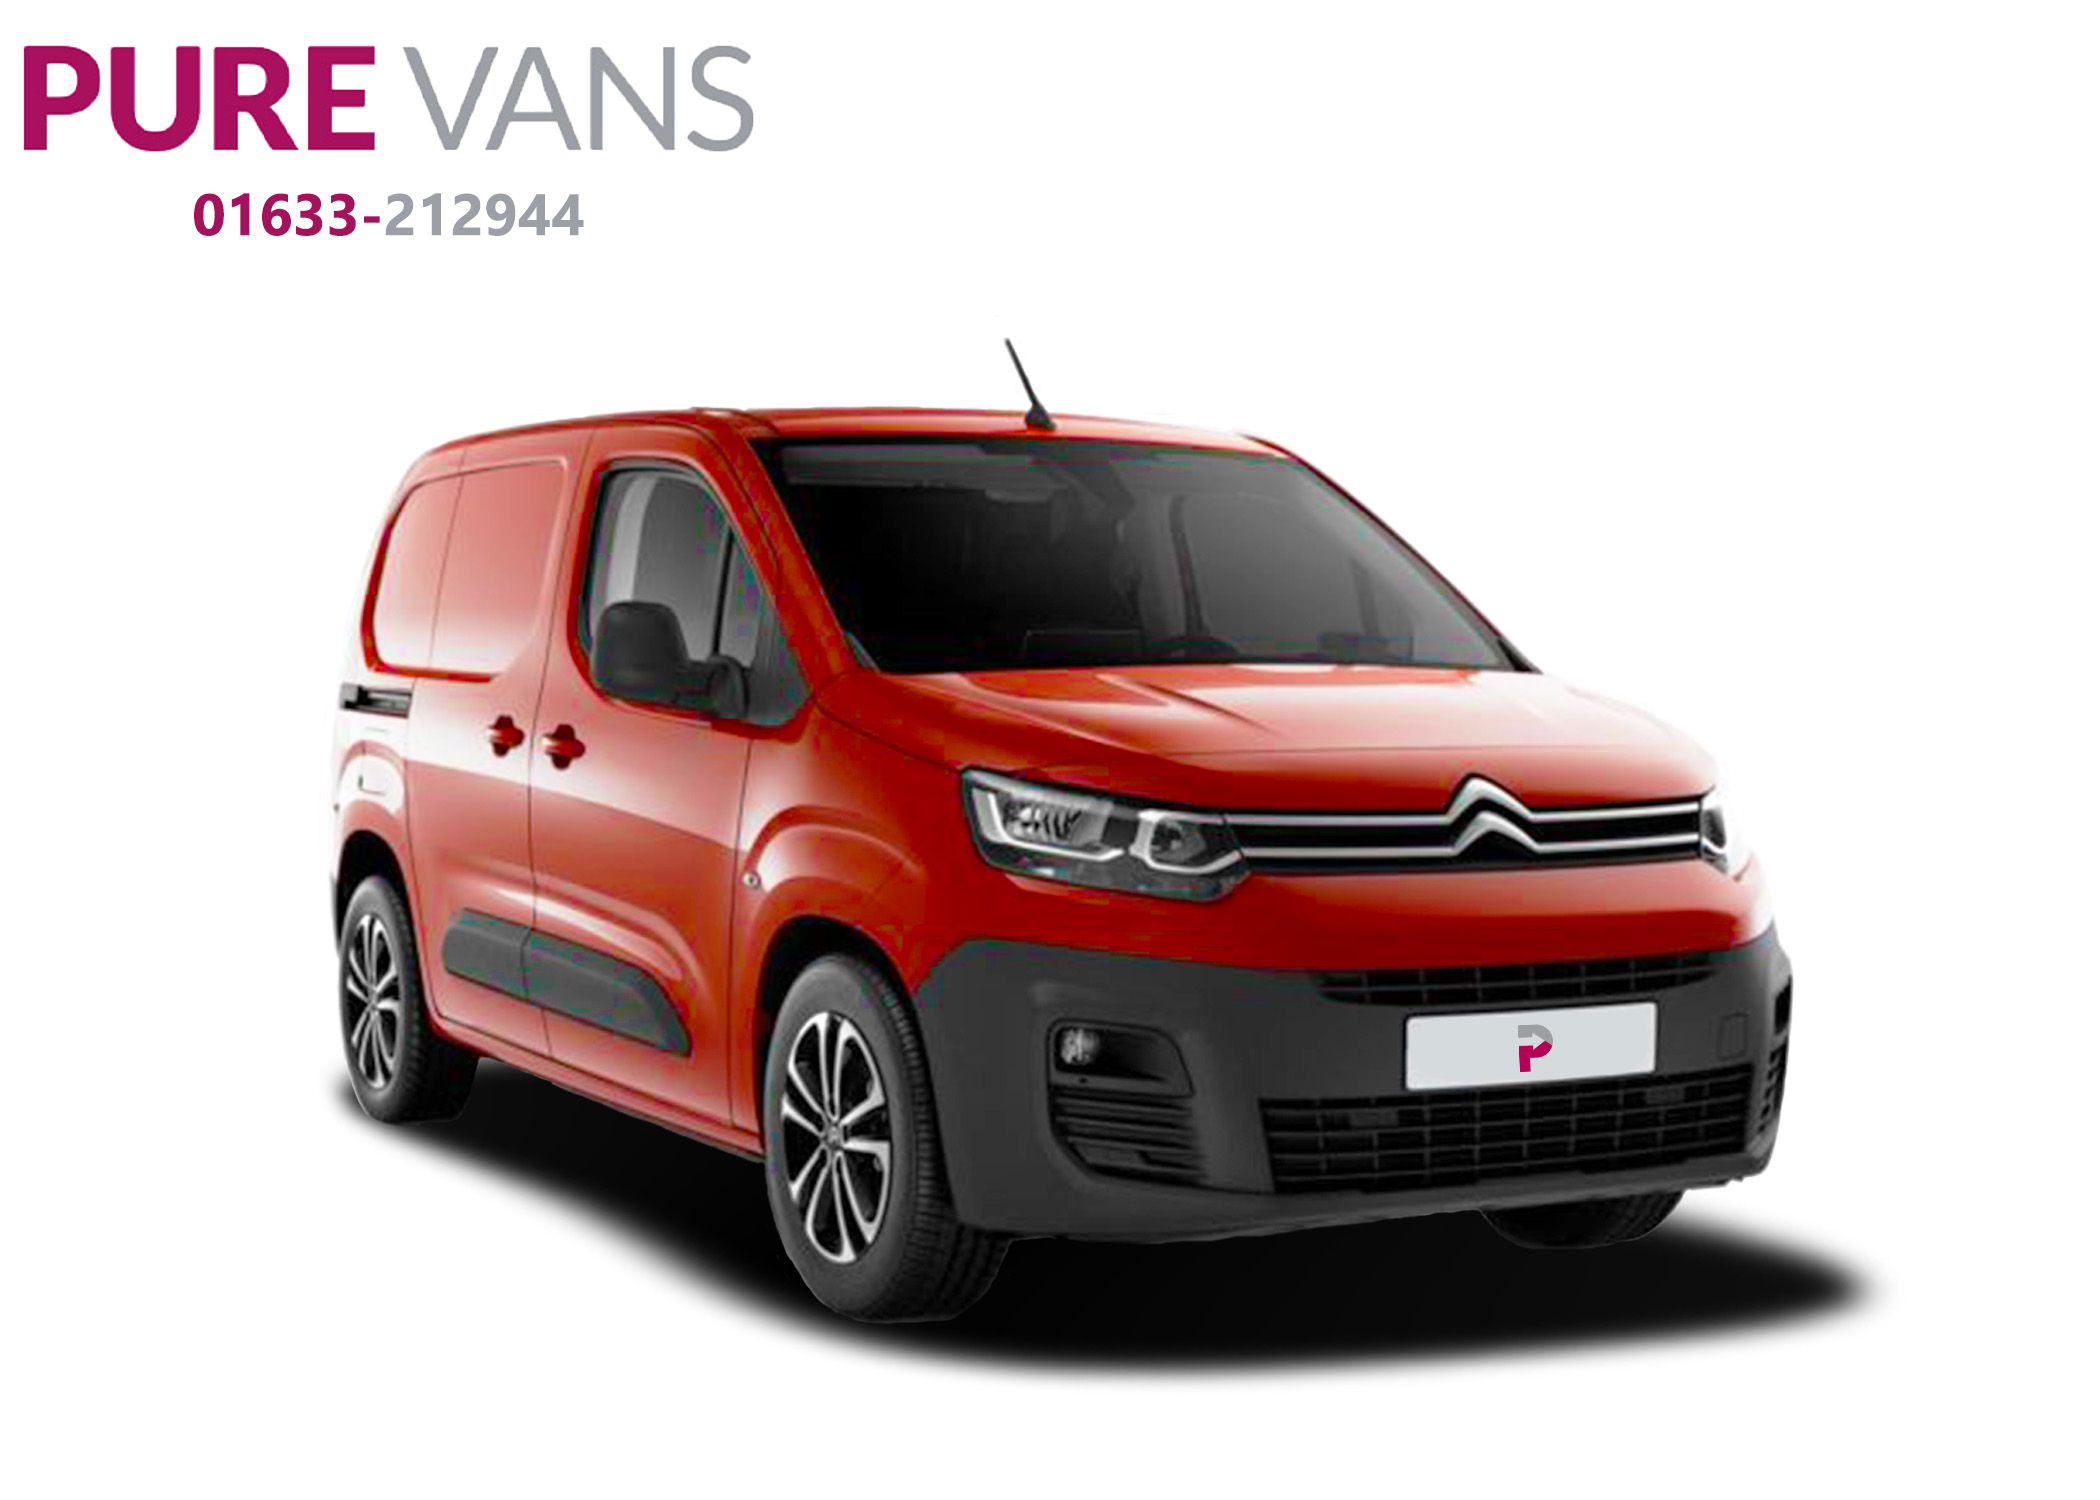 Citroen Berlingo Van 2019.jpg